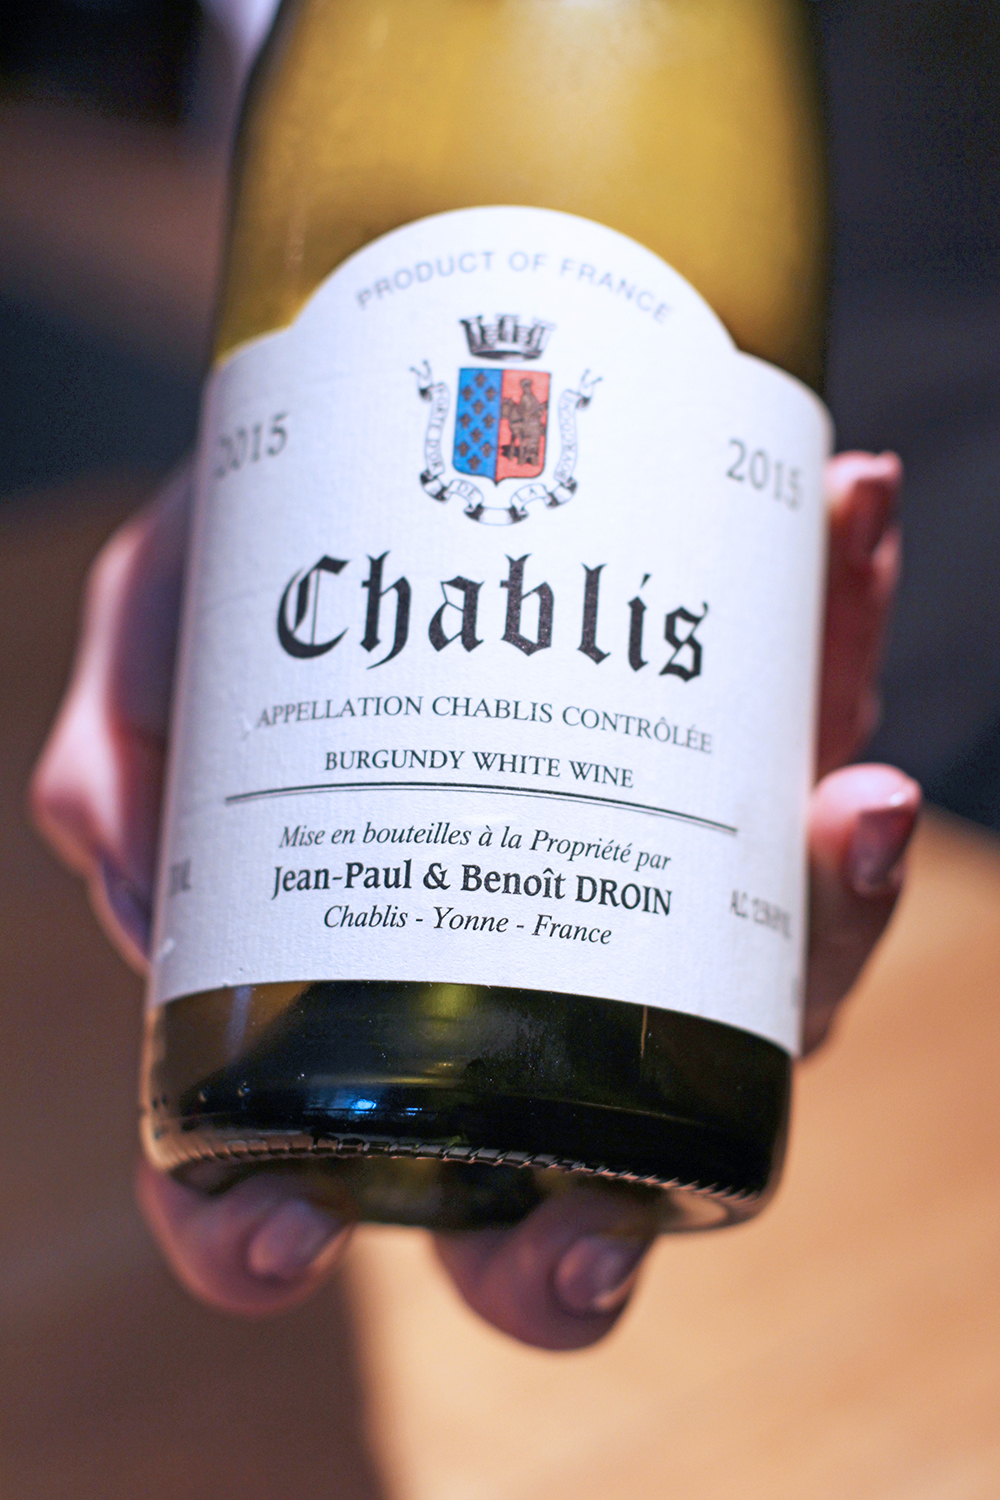 Chablis at Rozbrat 20 Restaurant, Warsaw - travel & lifestyle blog